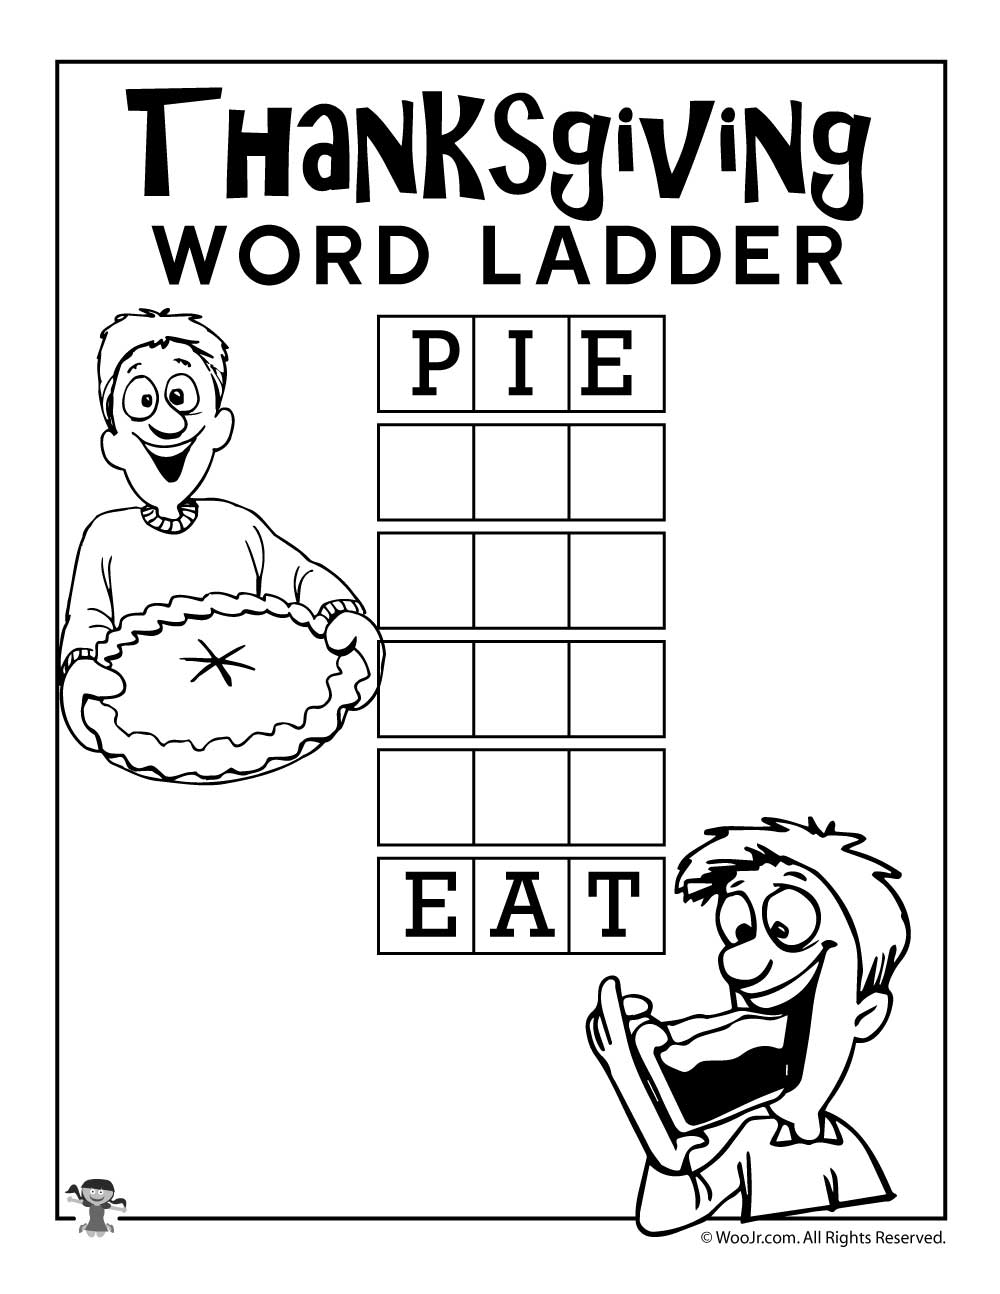 Worksheets Word Ladder Worksheets pie eat word ladder woo jr kids activities sharethis copy and paste